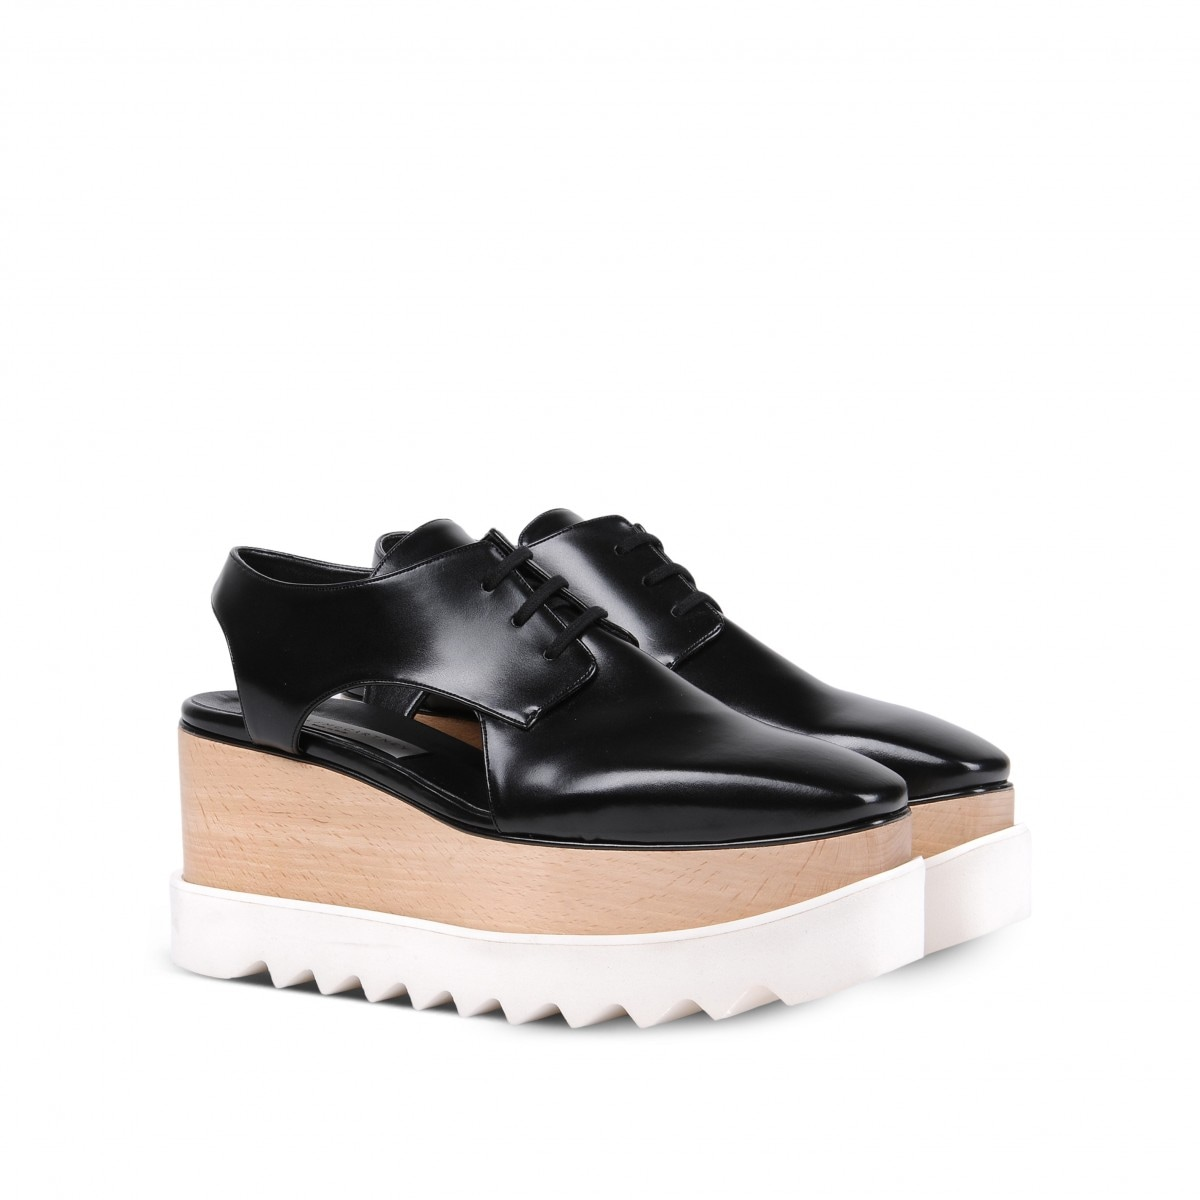 stella mccartney scarpe zeppa stringate